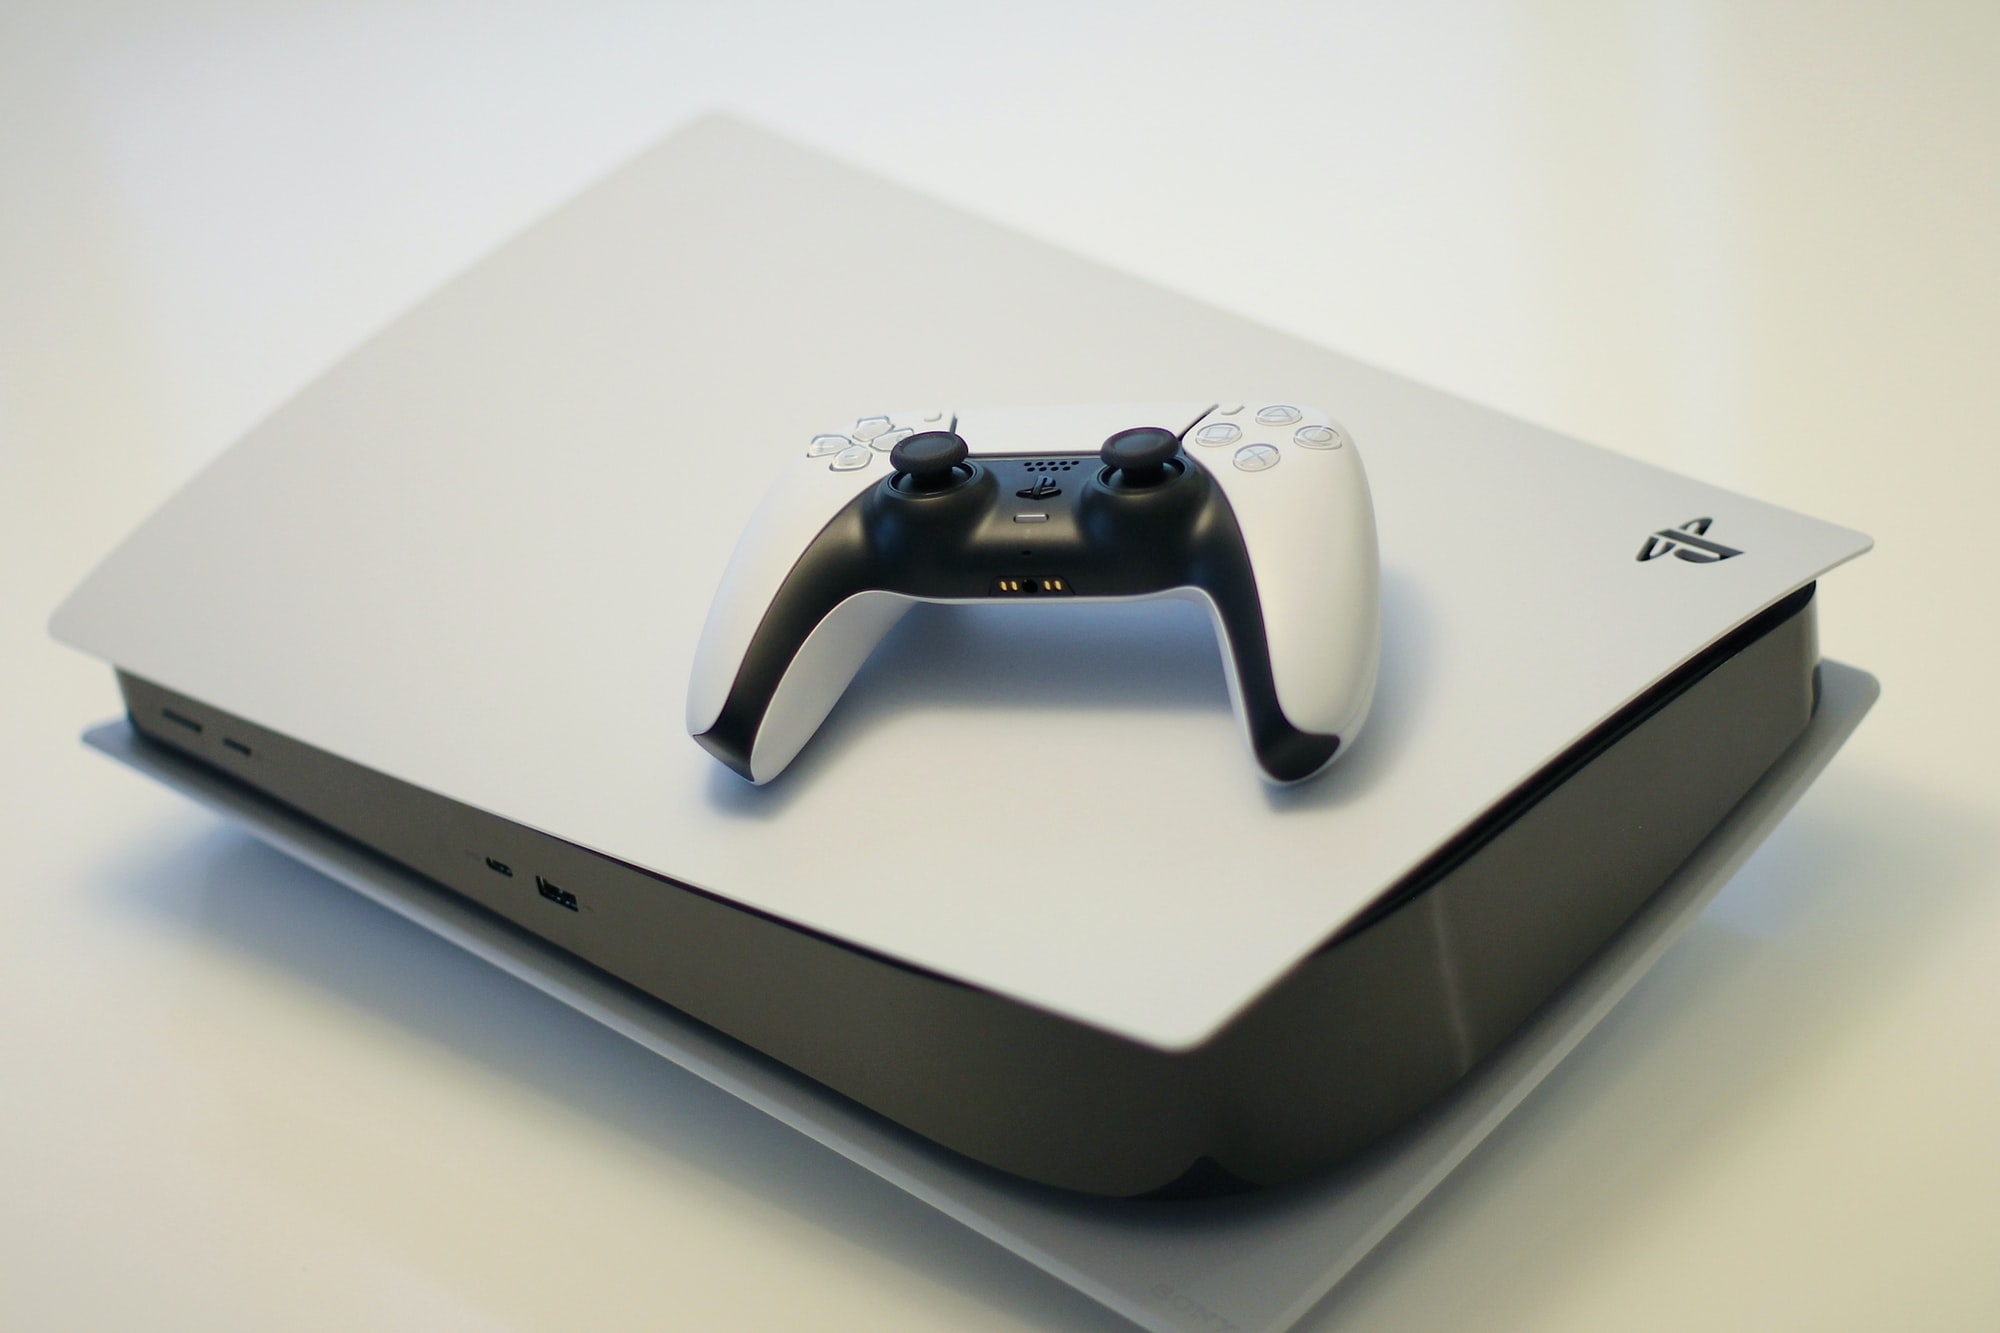 PlayStation 6 rumored to be able to render seven web pages at 30fps simultaneously